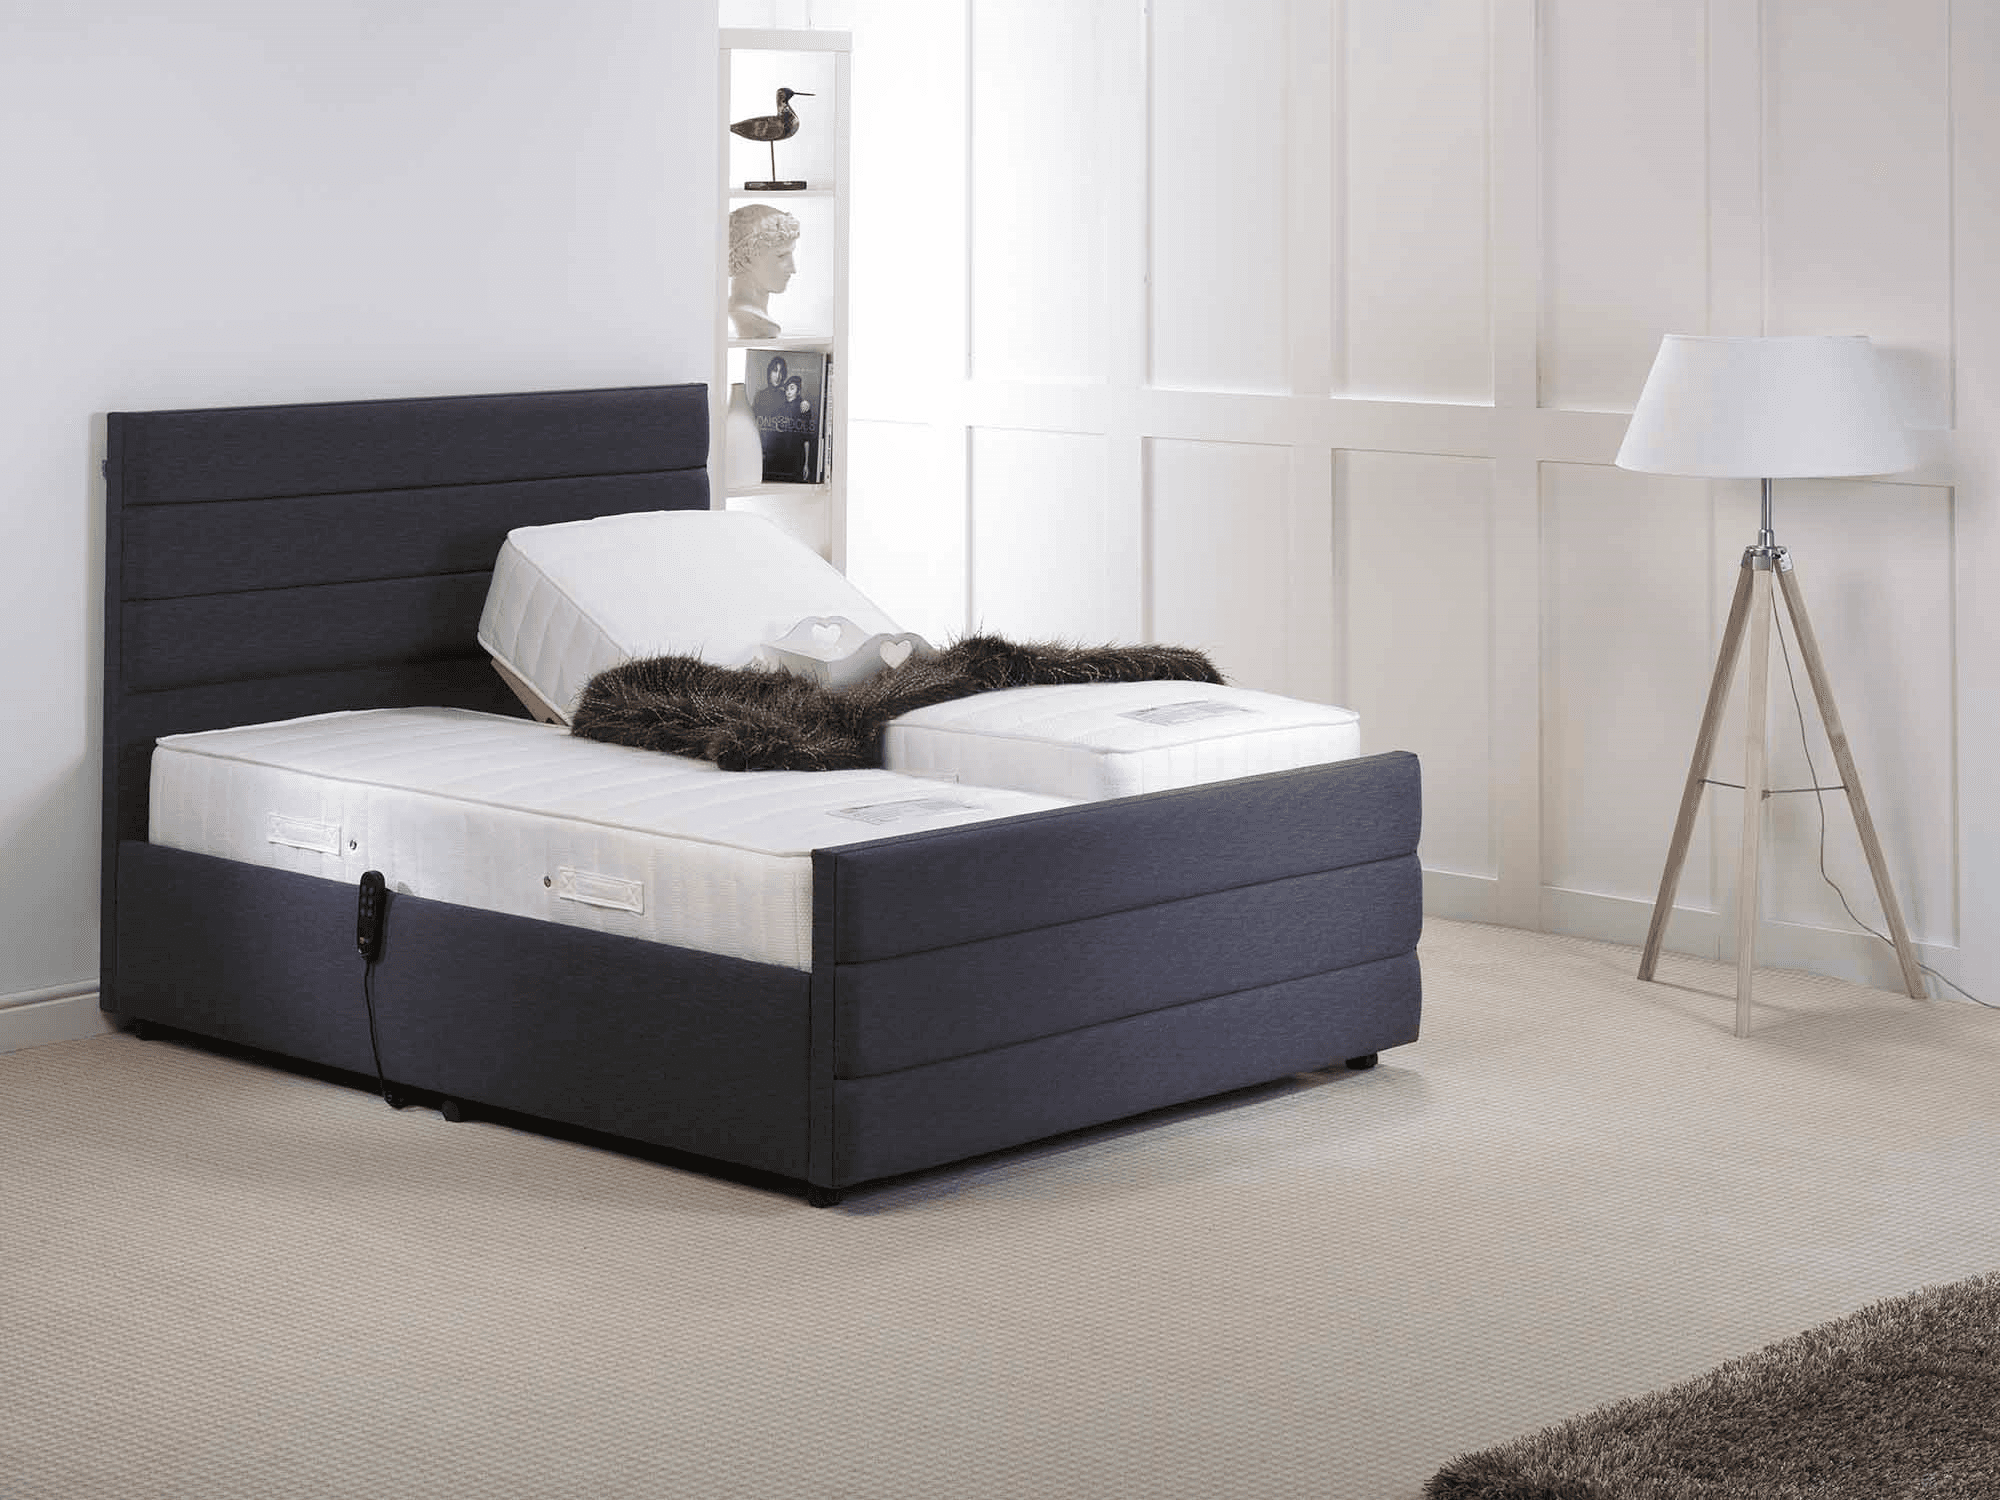 you can rely on us for high quality beds in east london